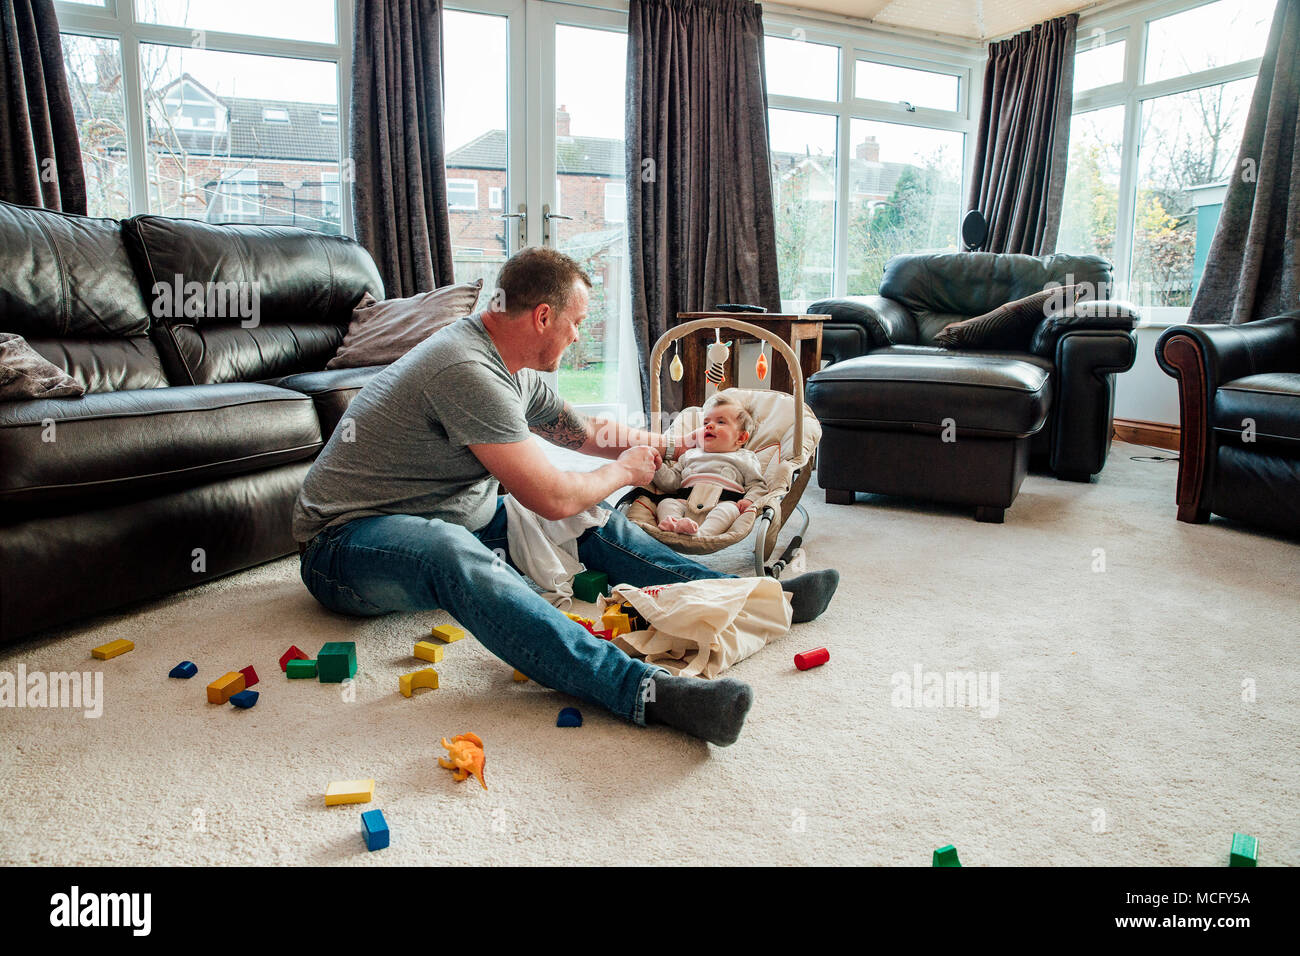 Stay at home father is relaxing in the living room with his baby daughter while she is in her baby bouncer. - Stock Image